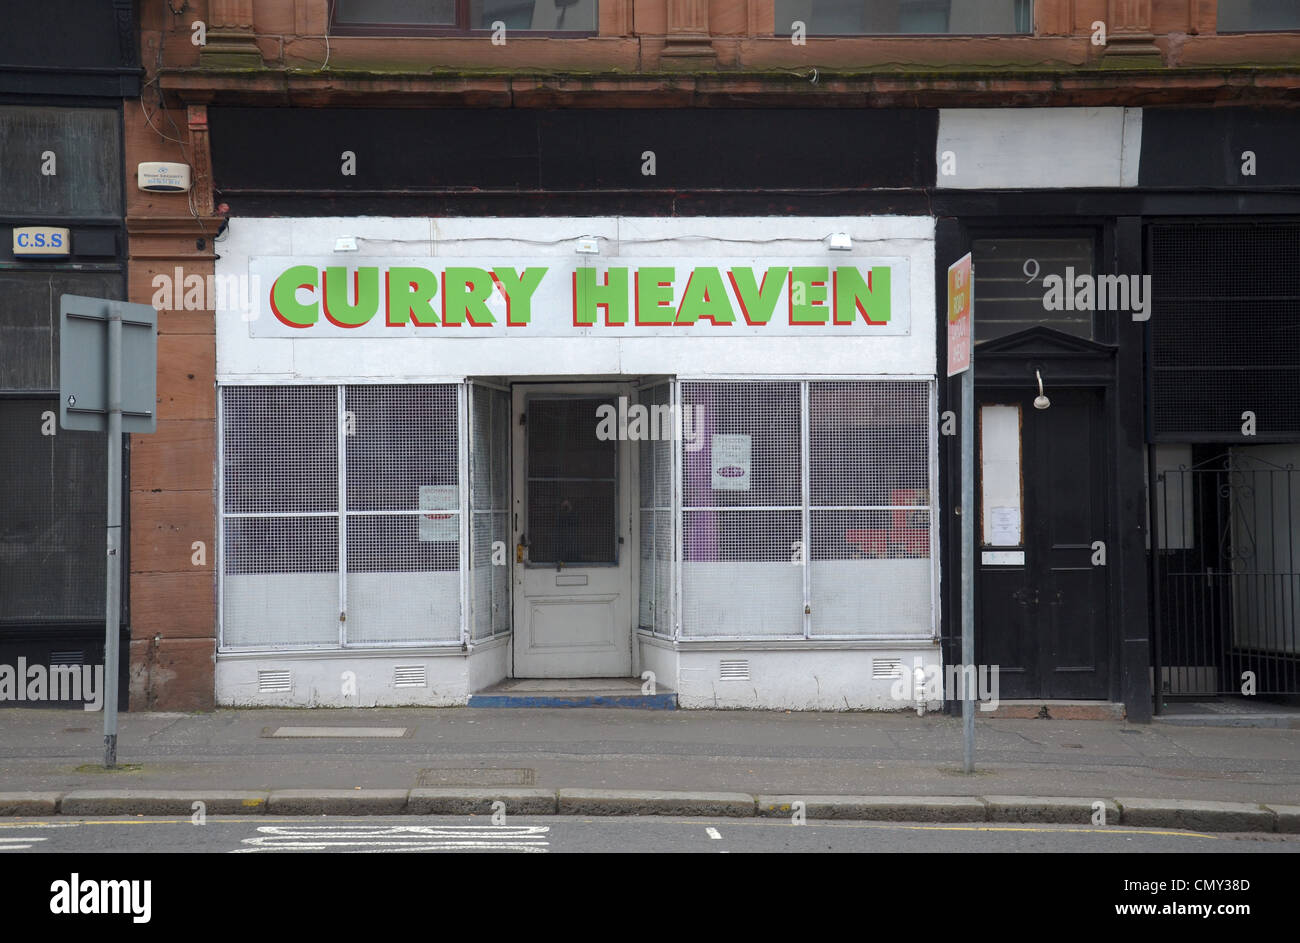 The facade of 'Curry Heaven' - a curry shop in Duke Street, Glasgow. - Stock Image